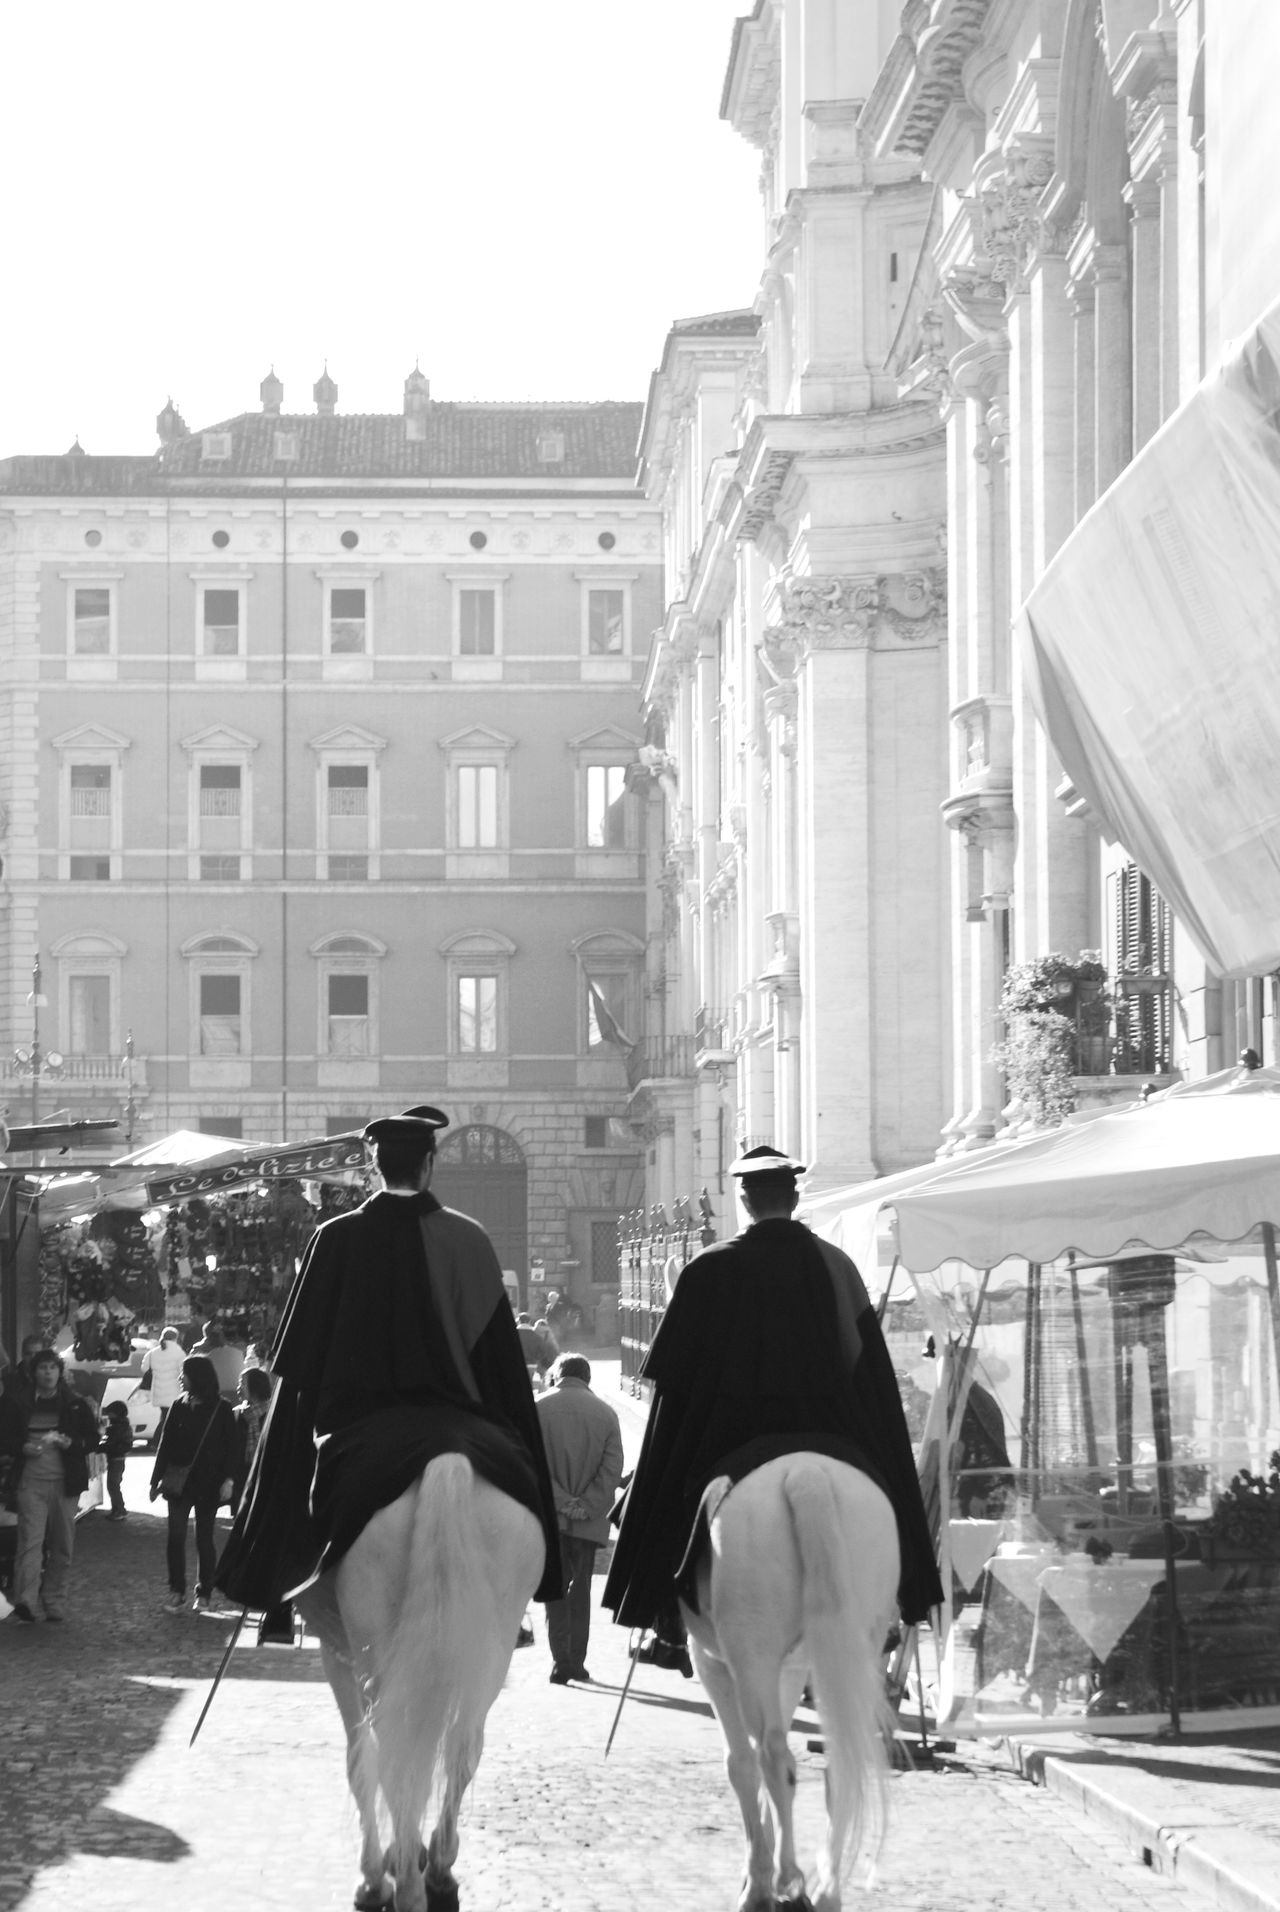 City Two People Outdoors Military Uniform Architecture Adult Italy Europe Horses Working Horse Sunlight Market Vacation Blackandwhite